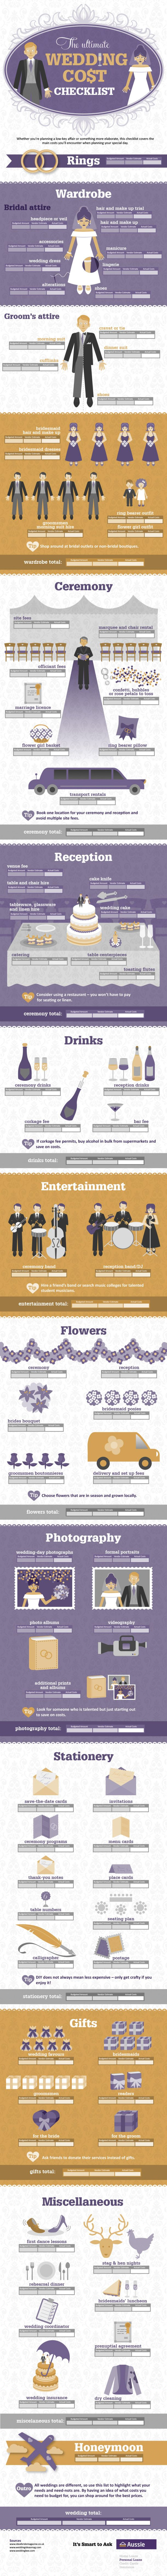 wedding infographic ...would be interesting to fill in & see how/where you blow the budget